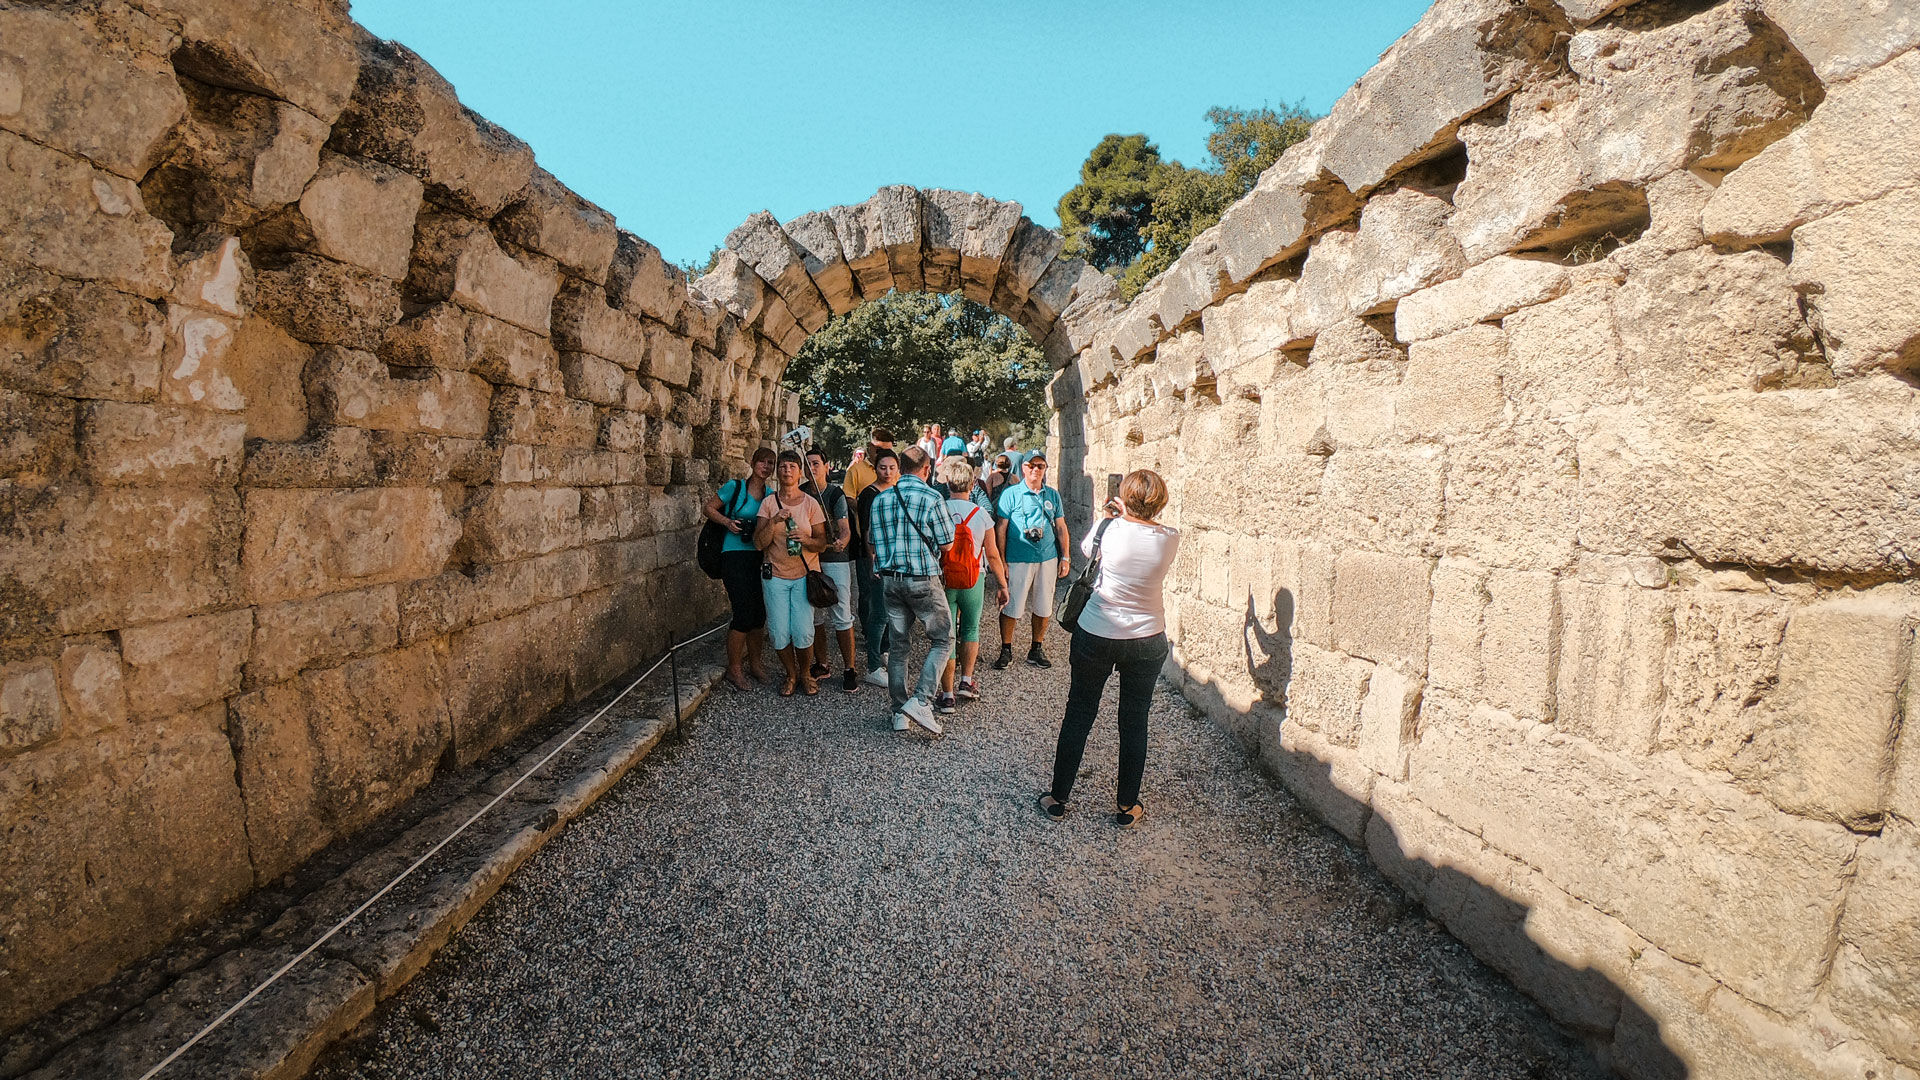 Passing through a stone archway, you enter the remains of the Ancient Stadium